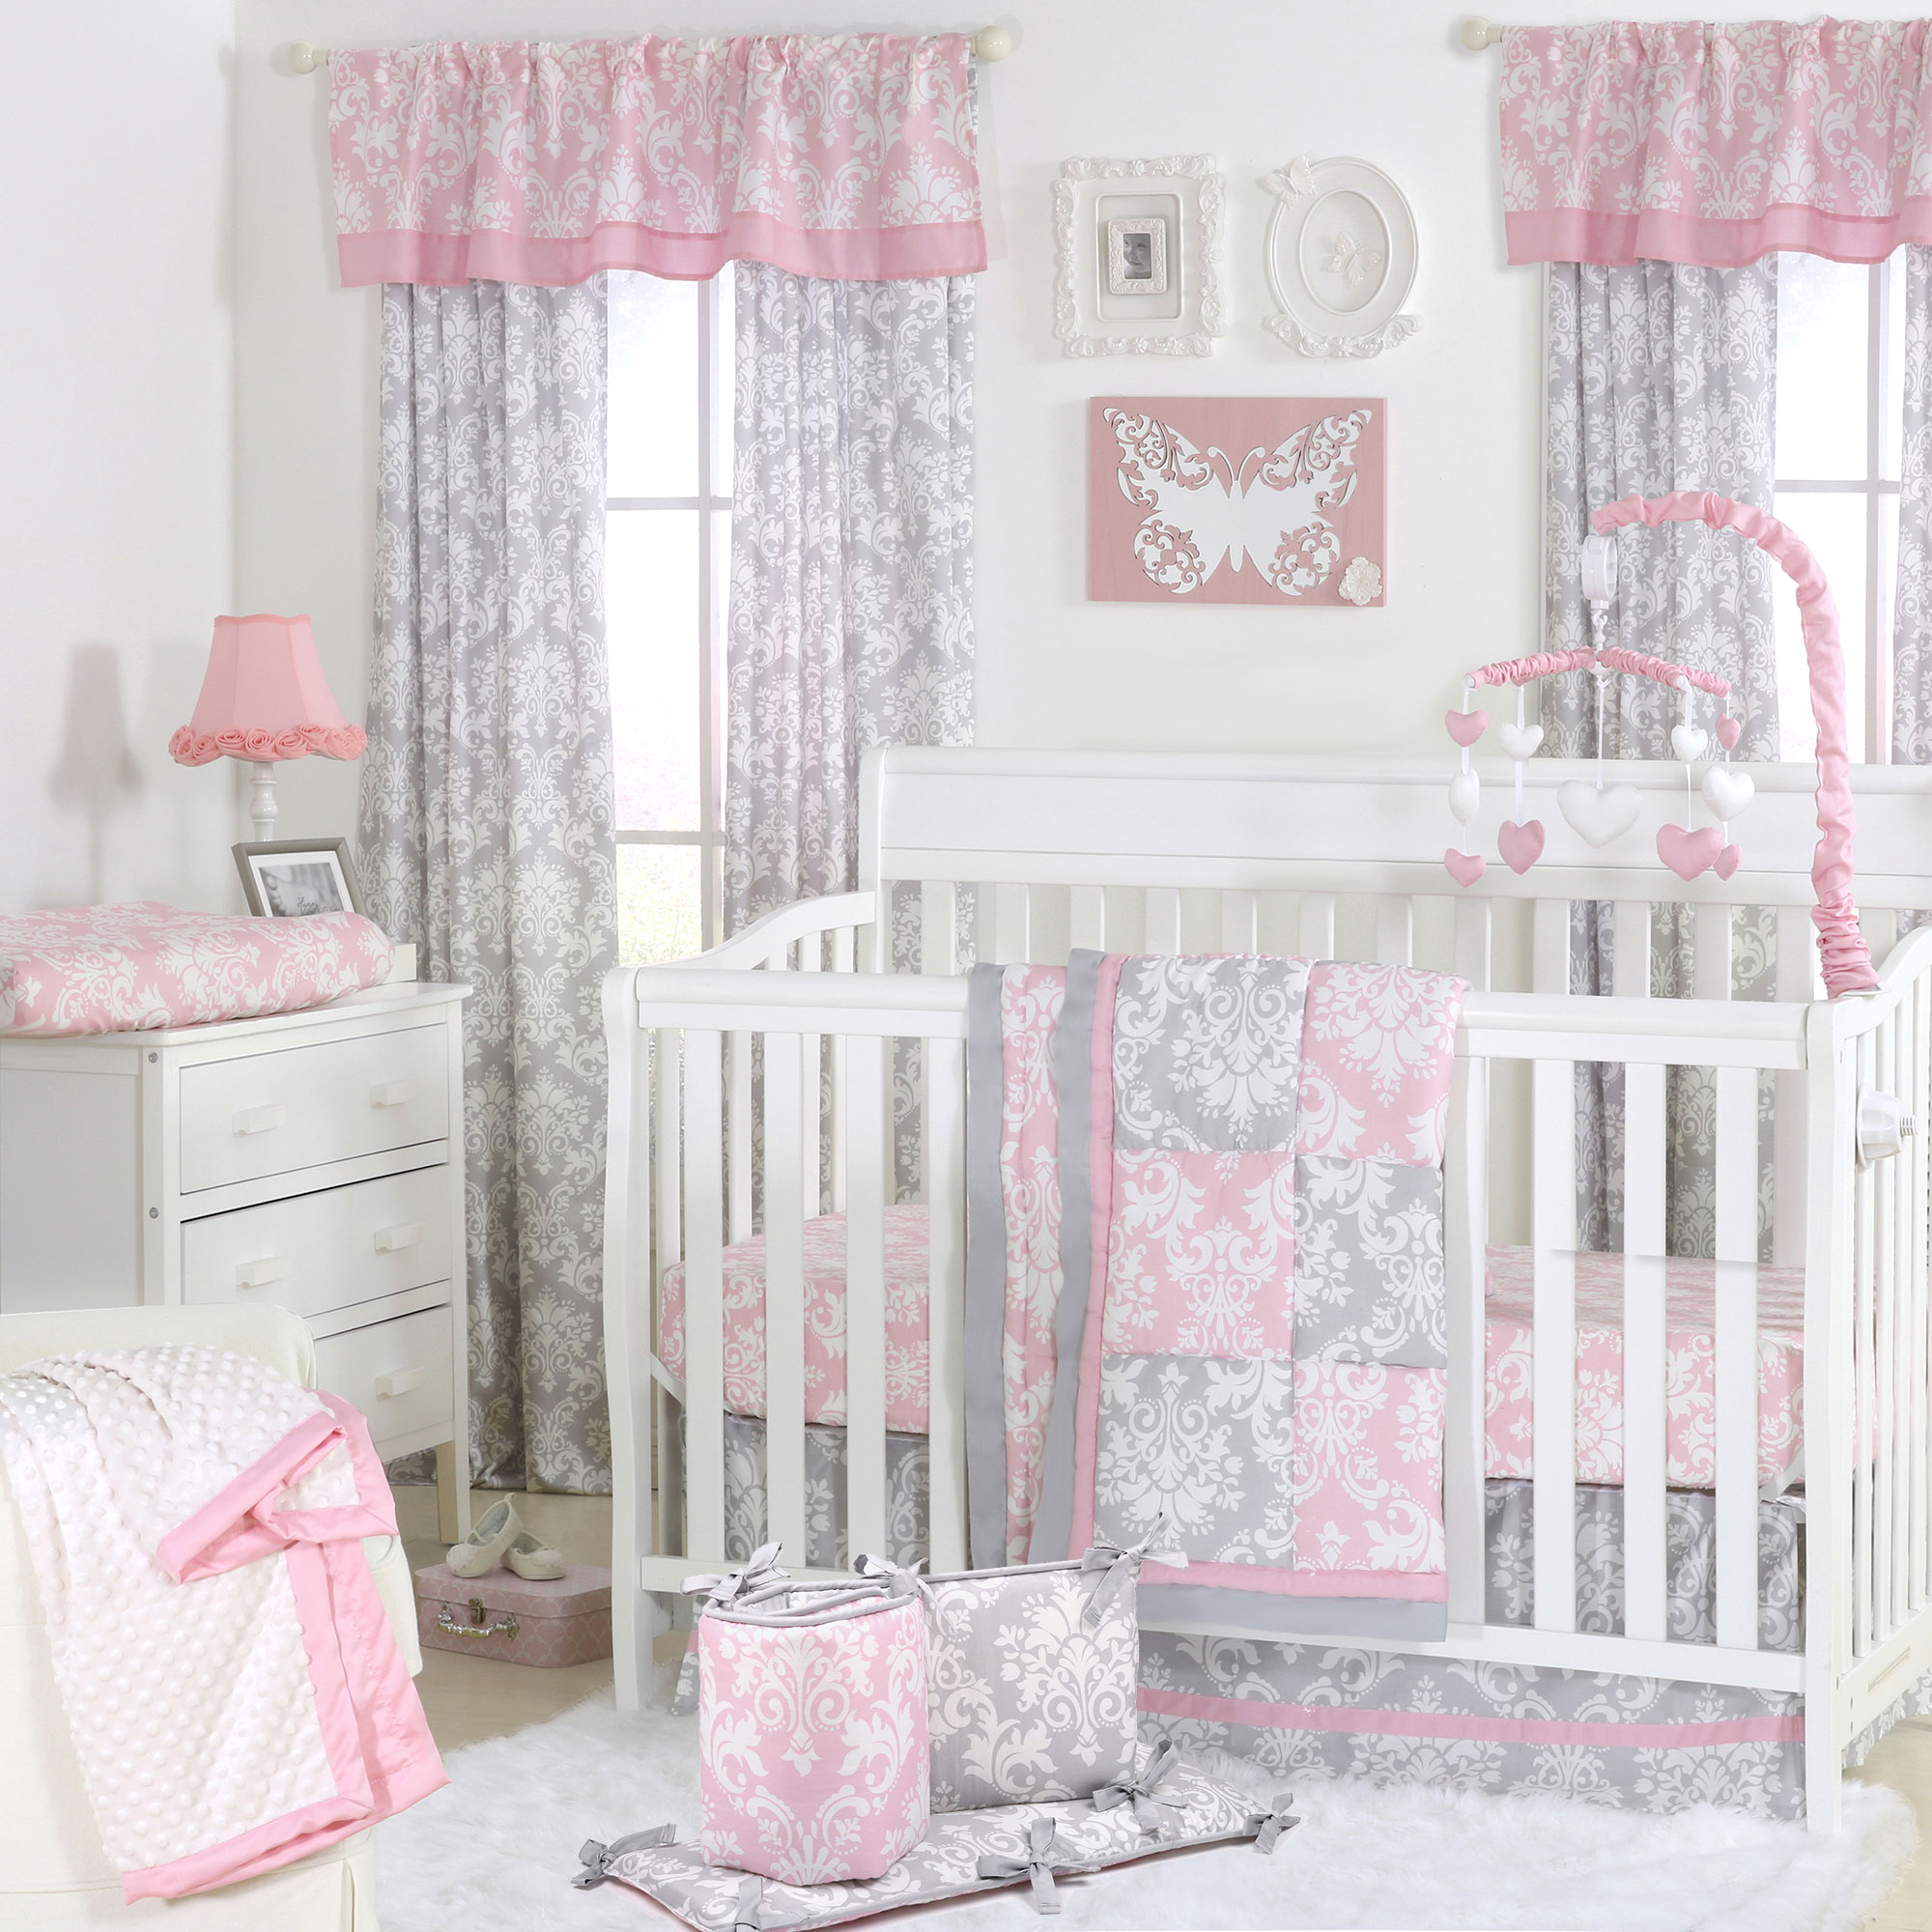 The Peanut Shell 5 Piece Baby Crib Bedding Set - Pink and Grey Damask Patchwork - 100% Cotton Quilt, Bumper, Dust Ruffle, Fitted Sheet, and Mobile